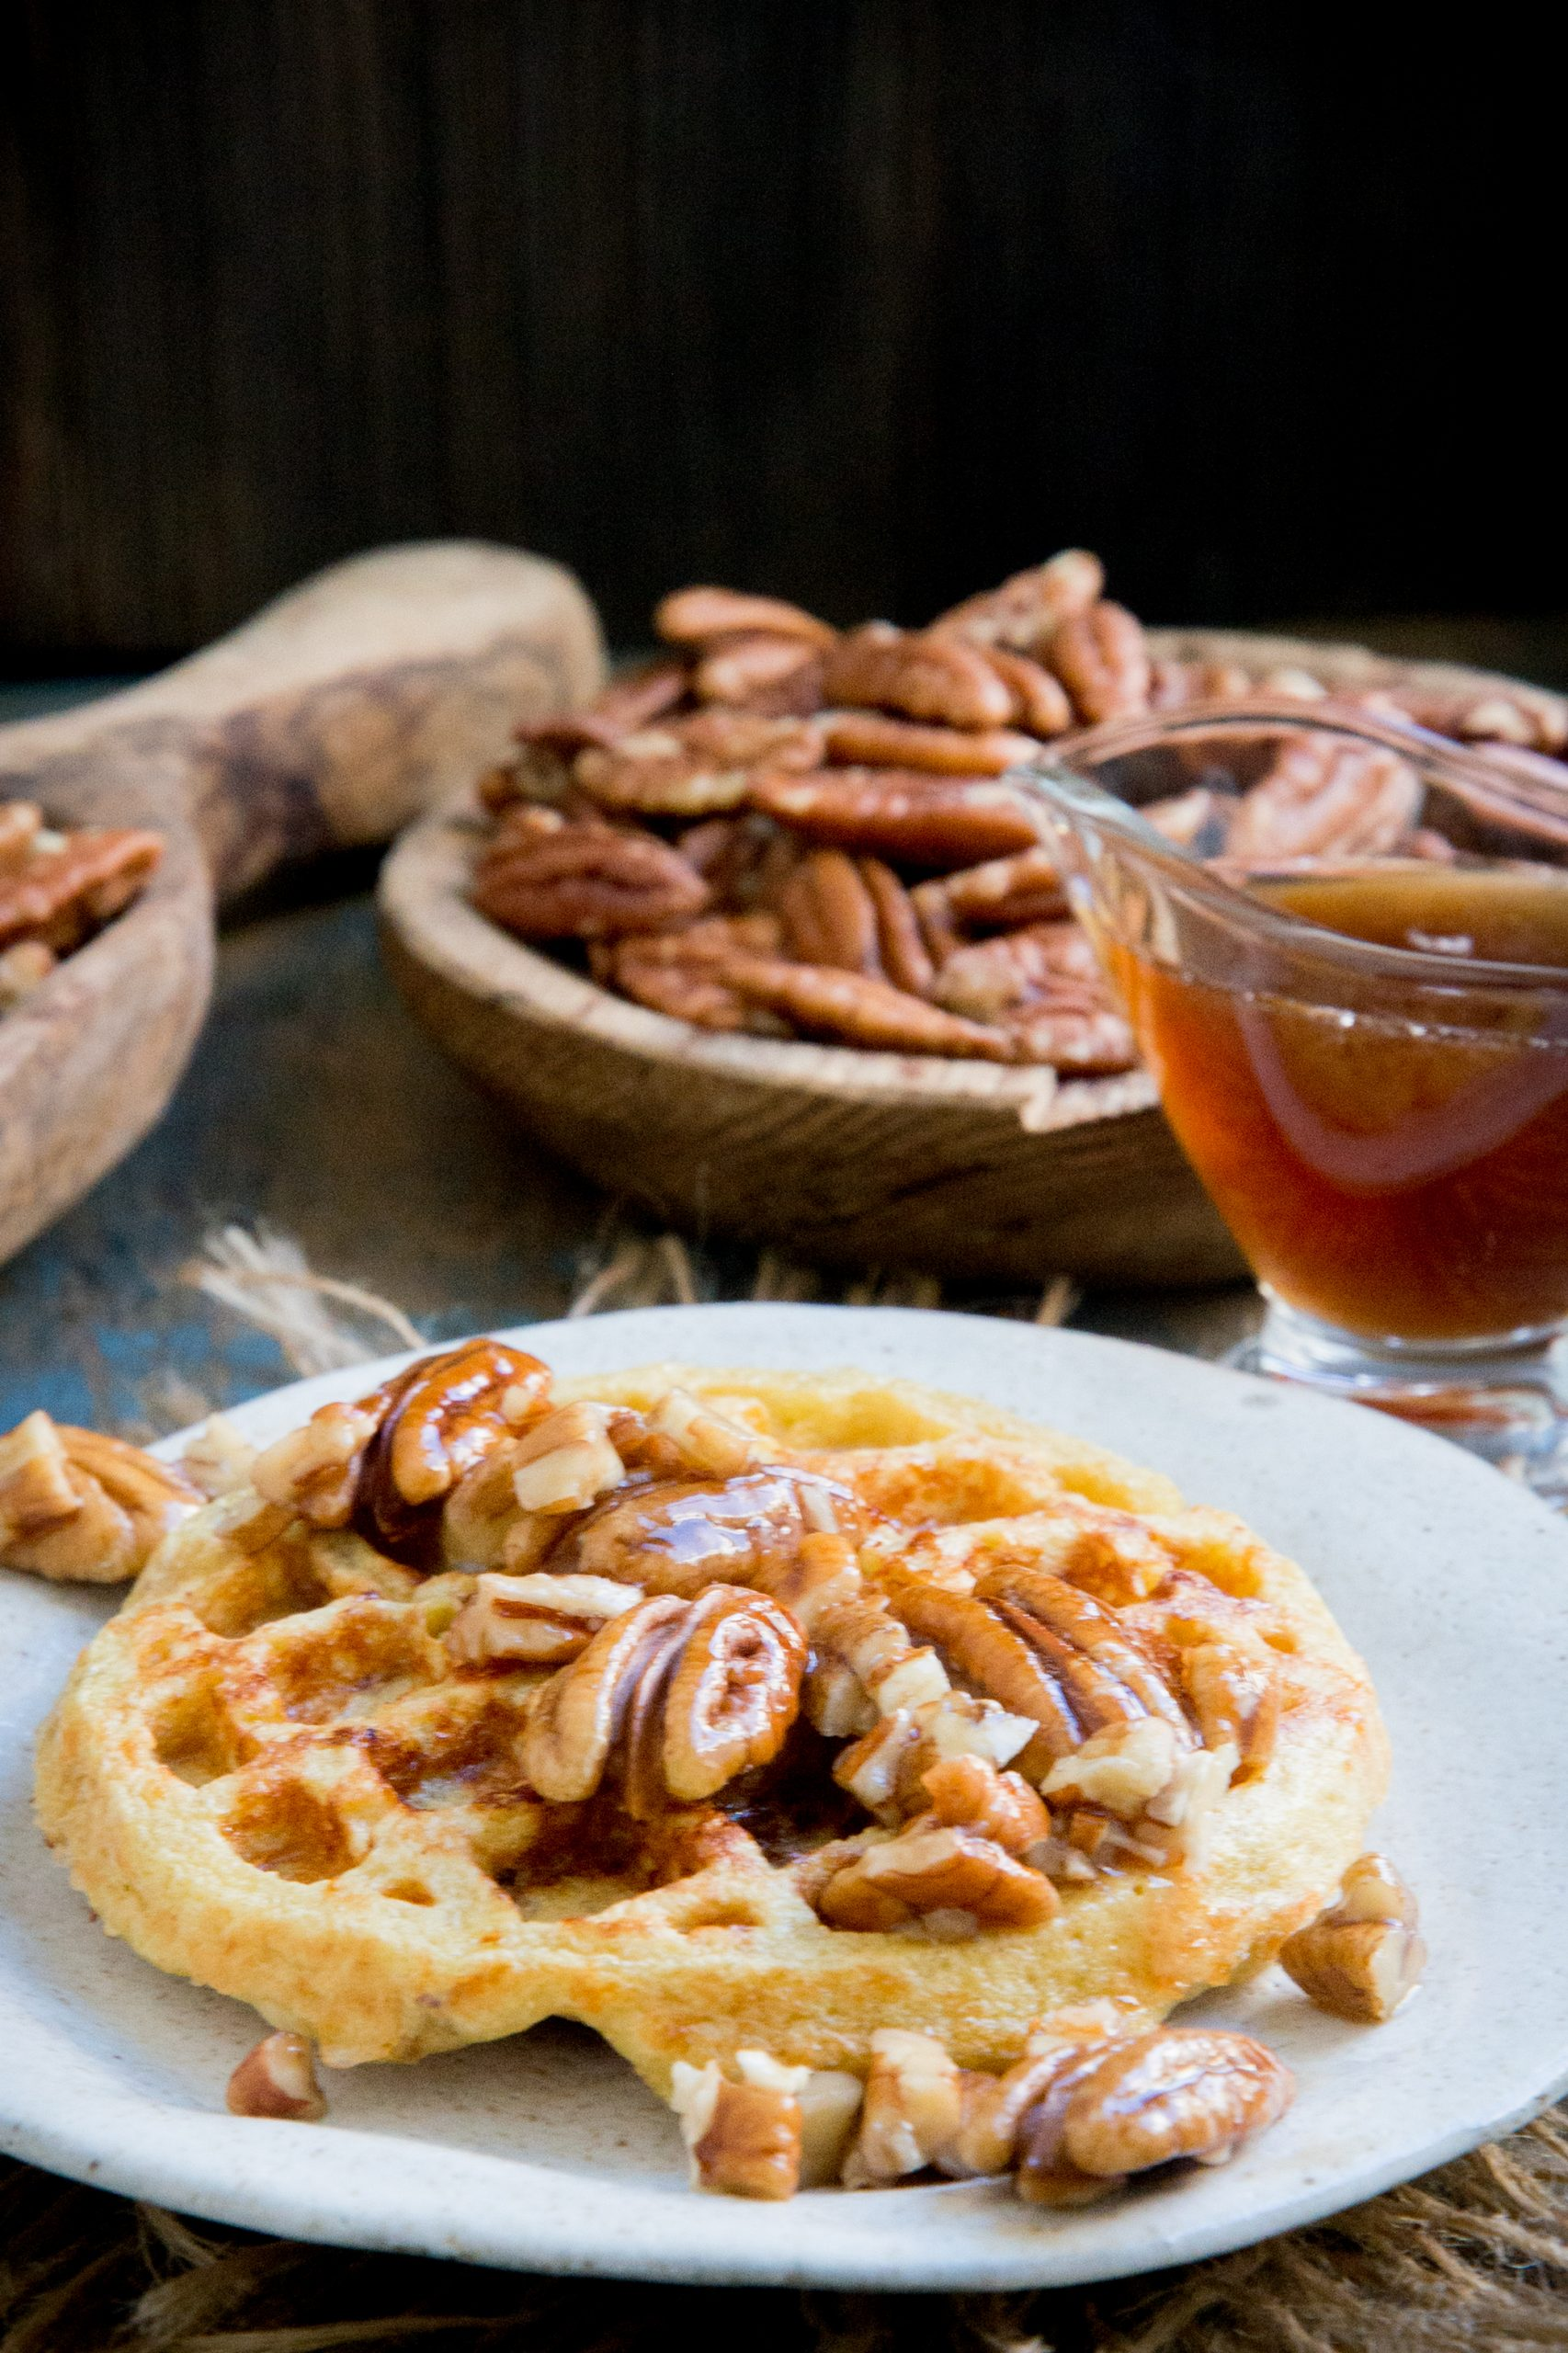 Maple pecan chaffles with pecans and syrup on top.